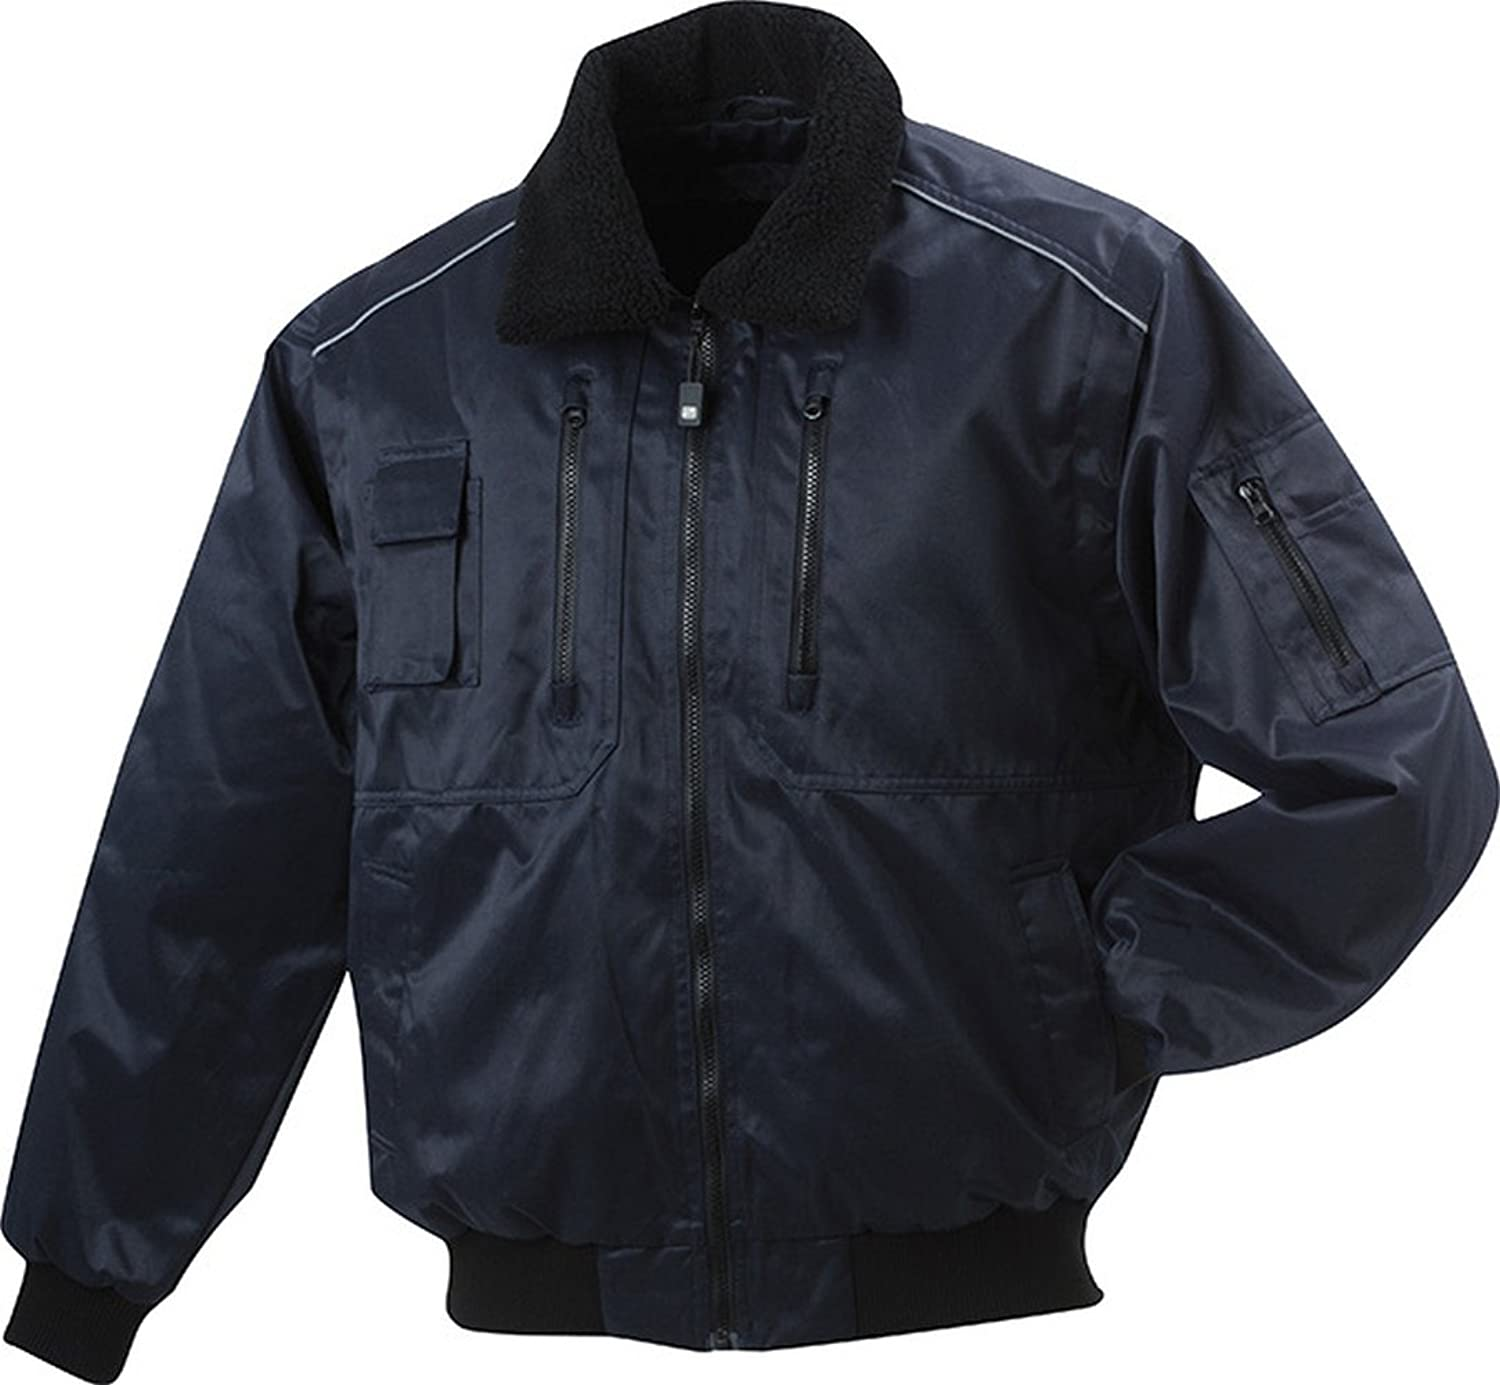 James & Nicholson Pilot Jacket 3 in 1 bestellen